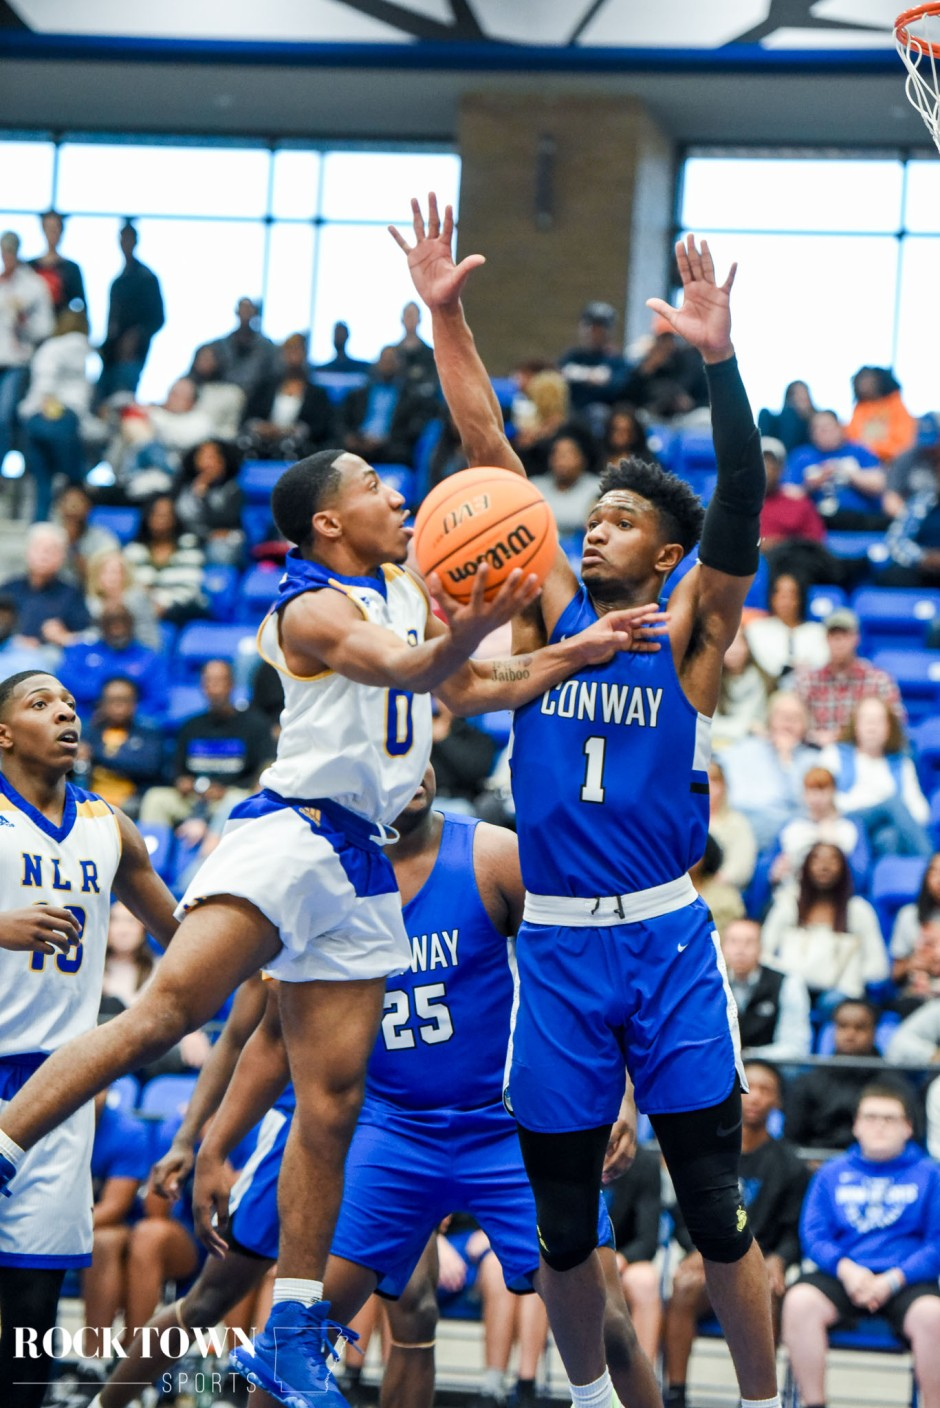 NLR_conway_bball_2020(i)-53